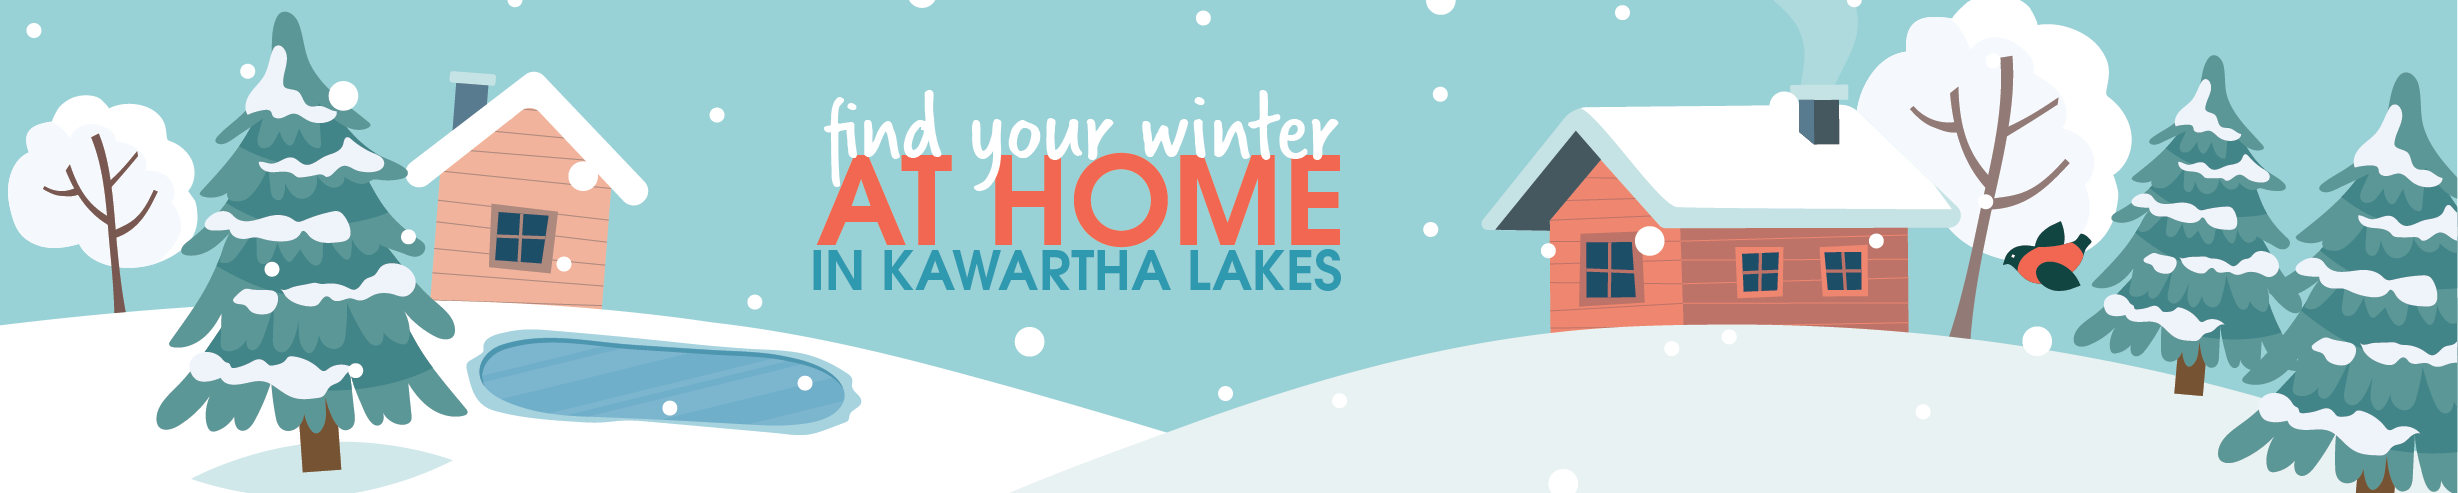 Find your winter at home in Kawartha Lakes